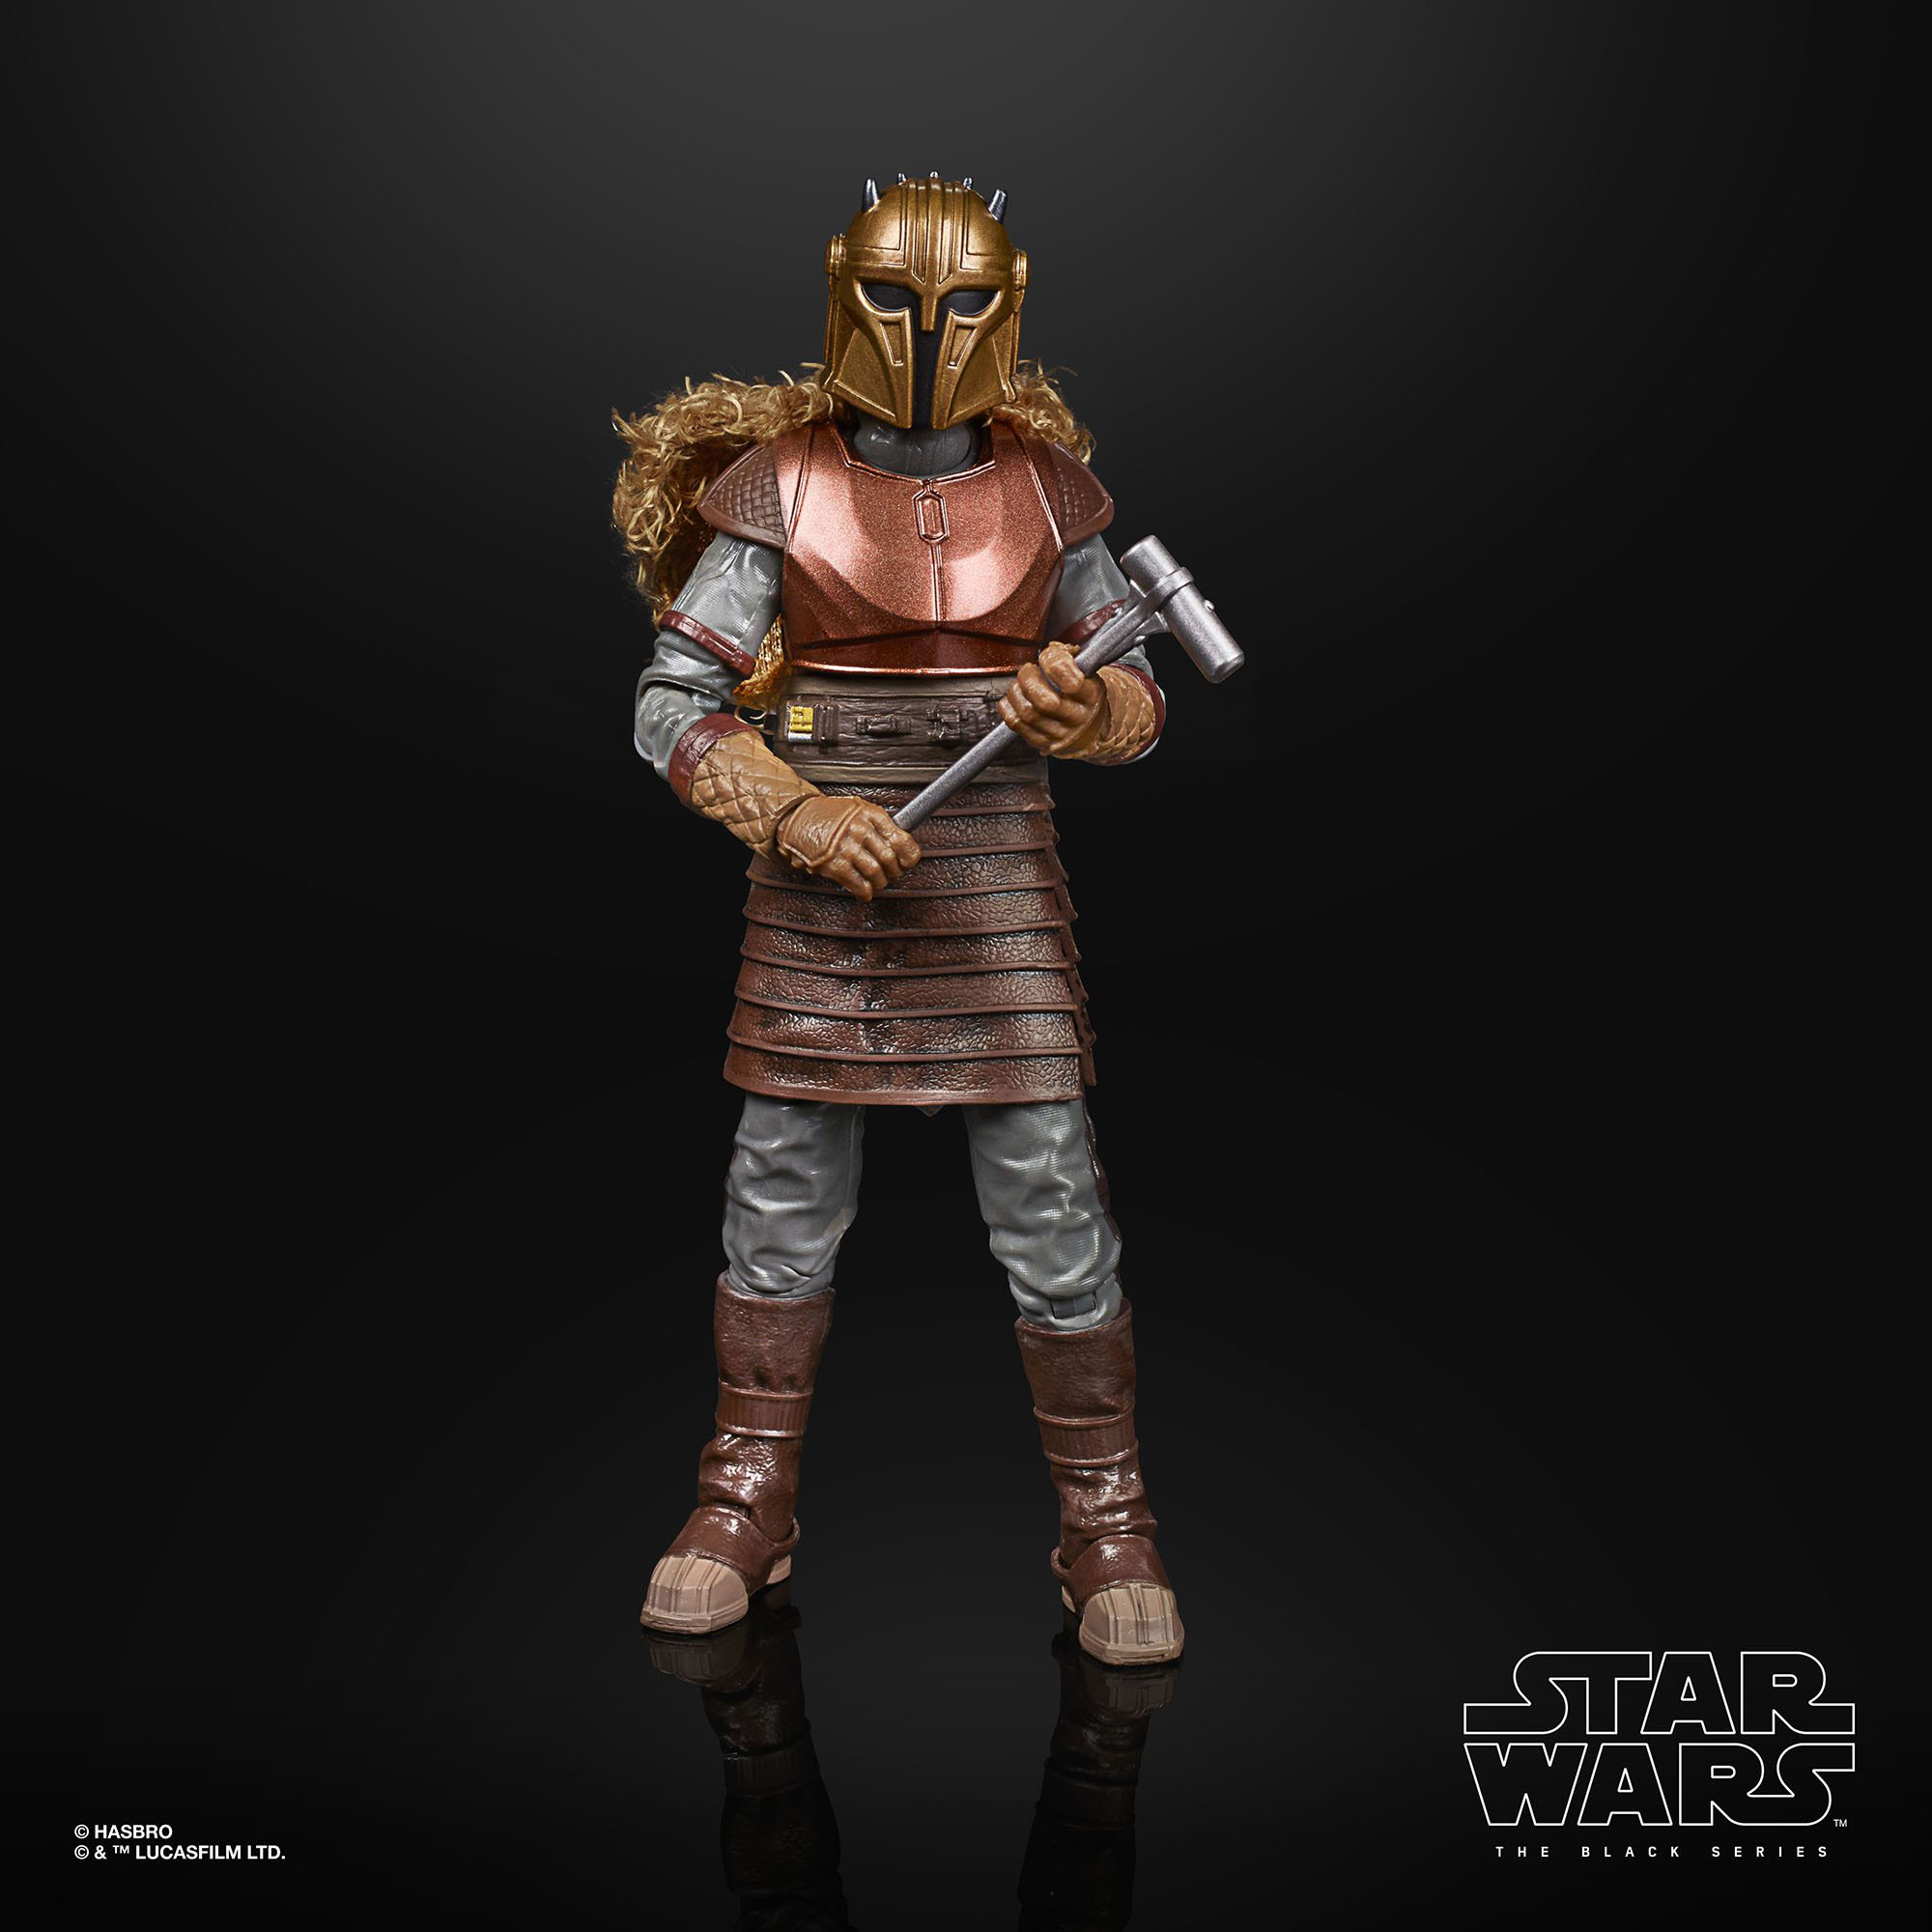 star-wars-black-series-the-armorer-mandalorian-action-figure-4